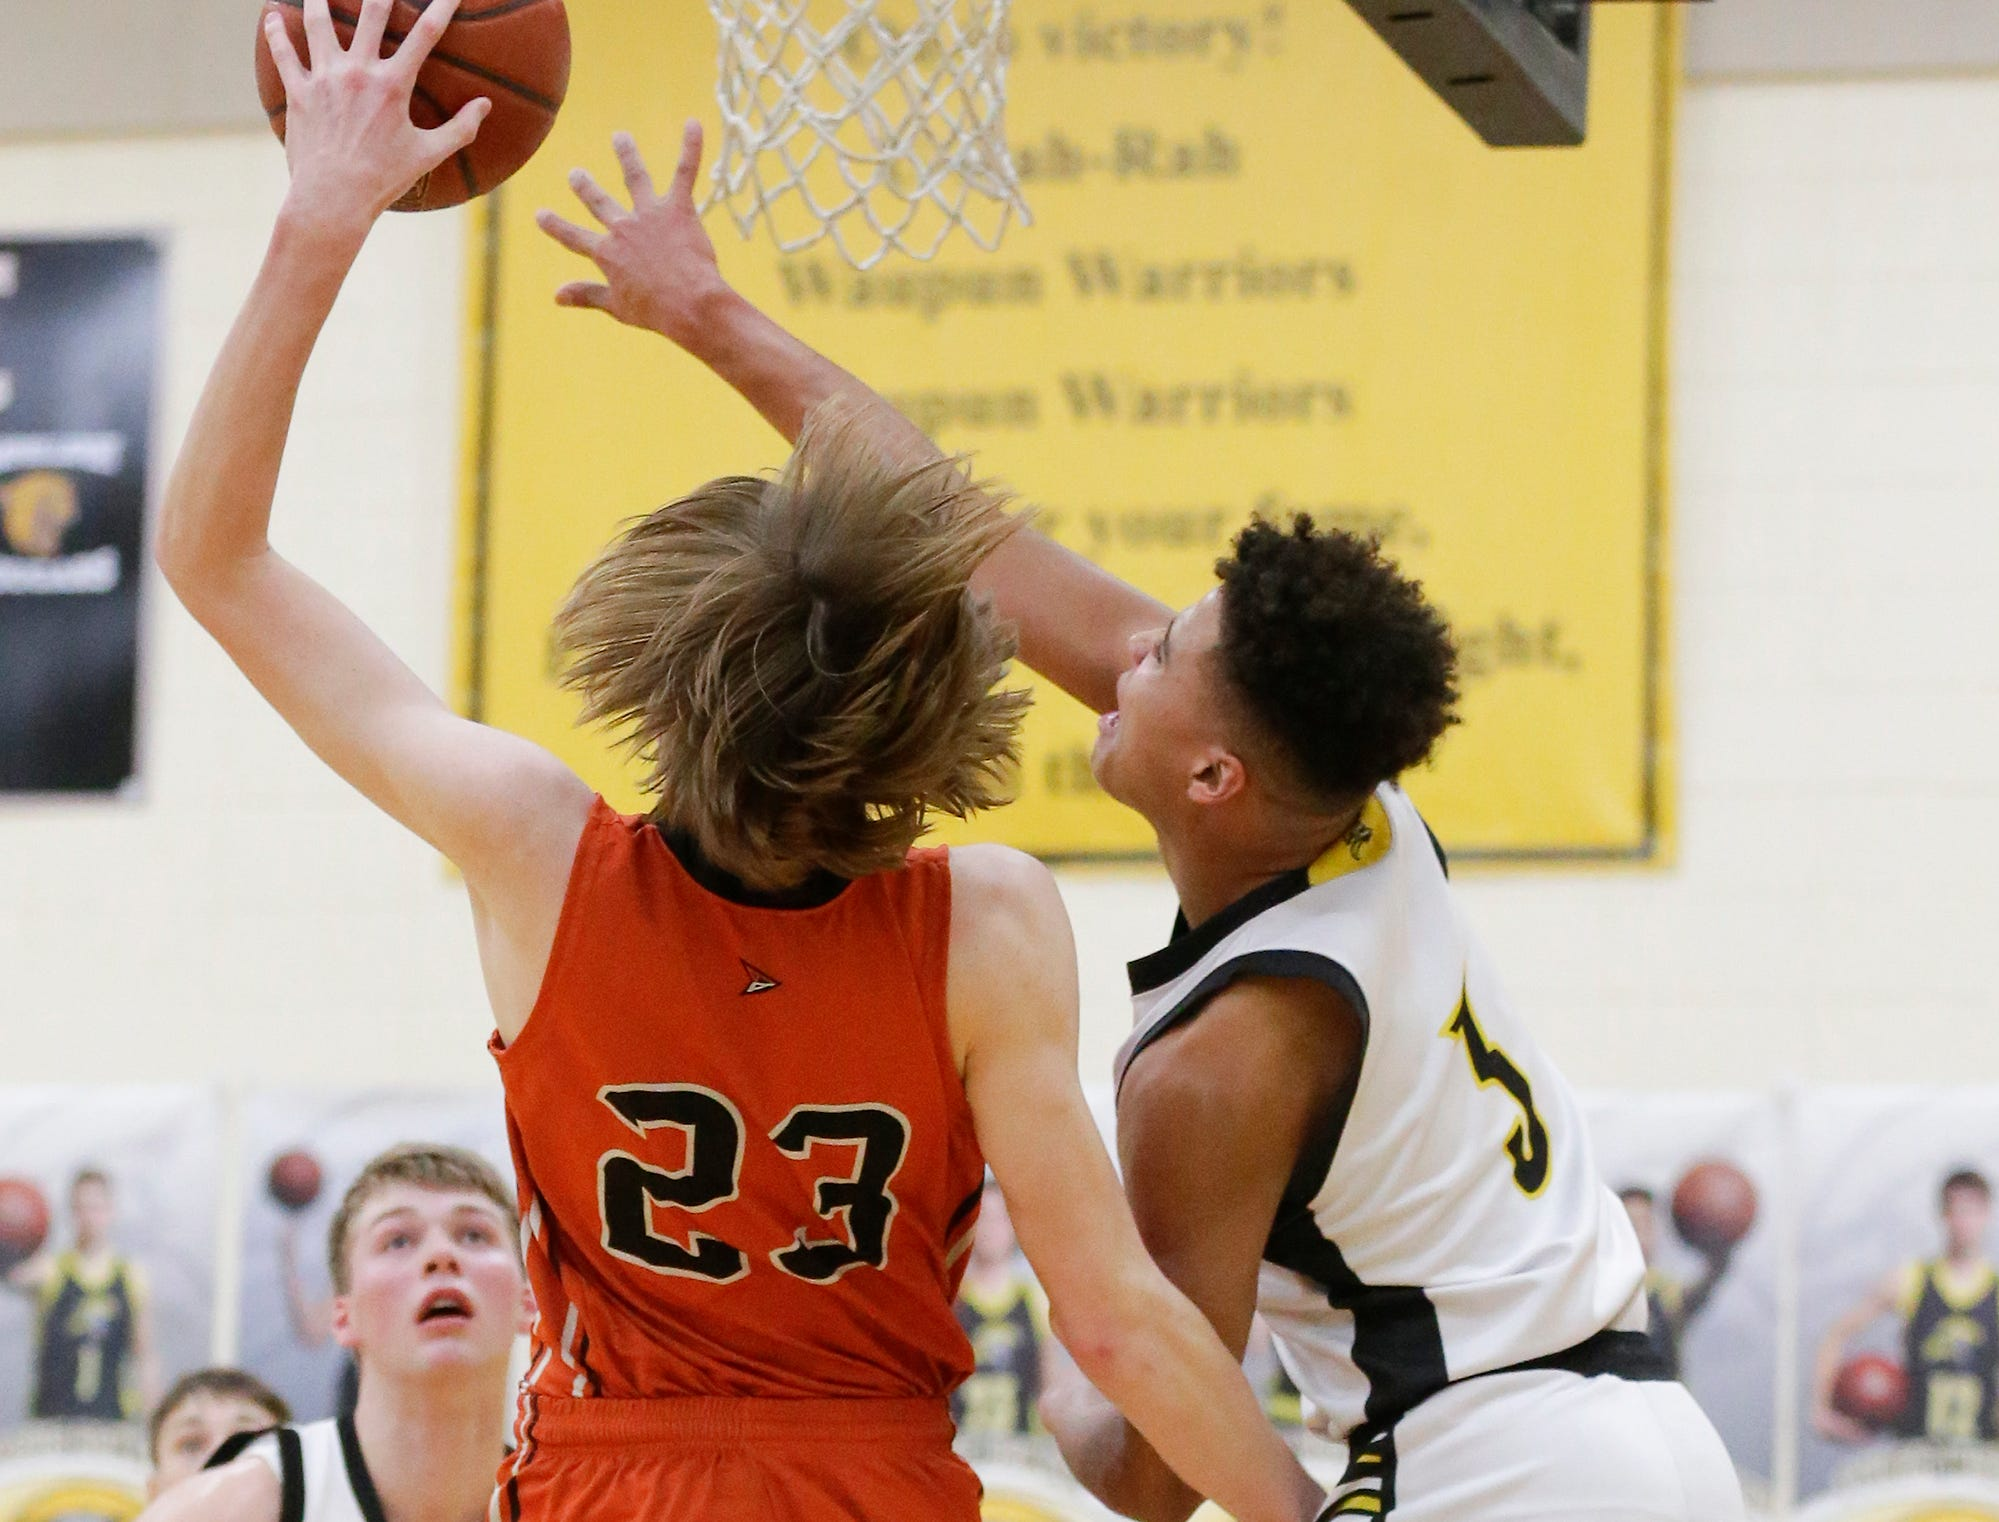 Waupun High School boys basketball's Quintin Winterfeldt (3) and Plymouth High School's Zach Zeeveld battle for a rebound during their game Friday, February 15, 2019 in Waupun. Doug Raflik/USA TODAY NETWORK-Wisconsin